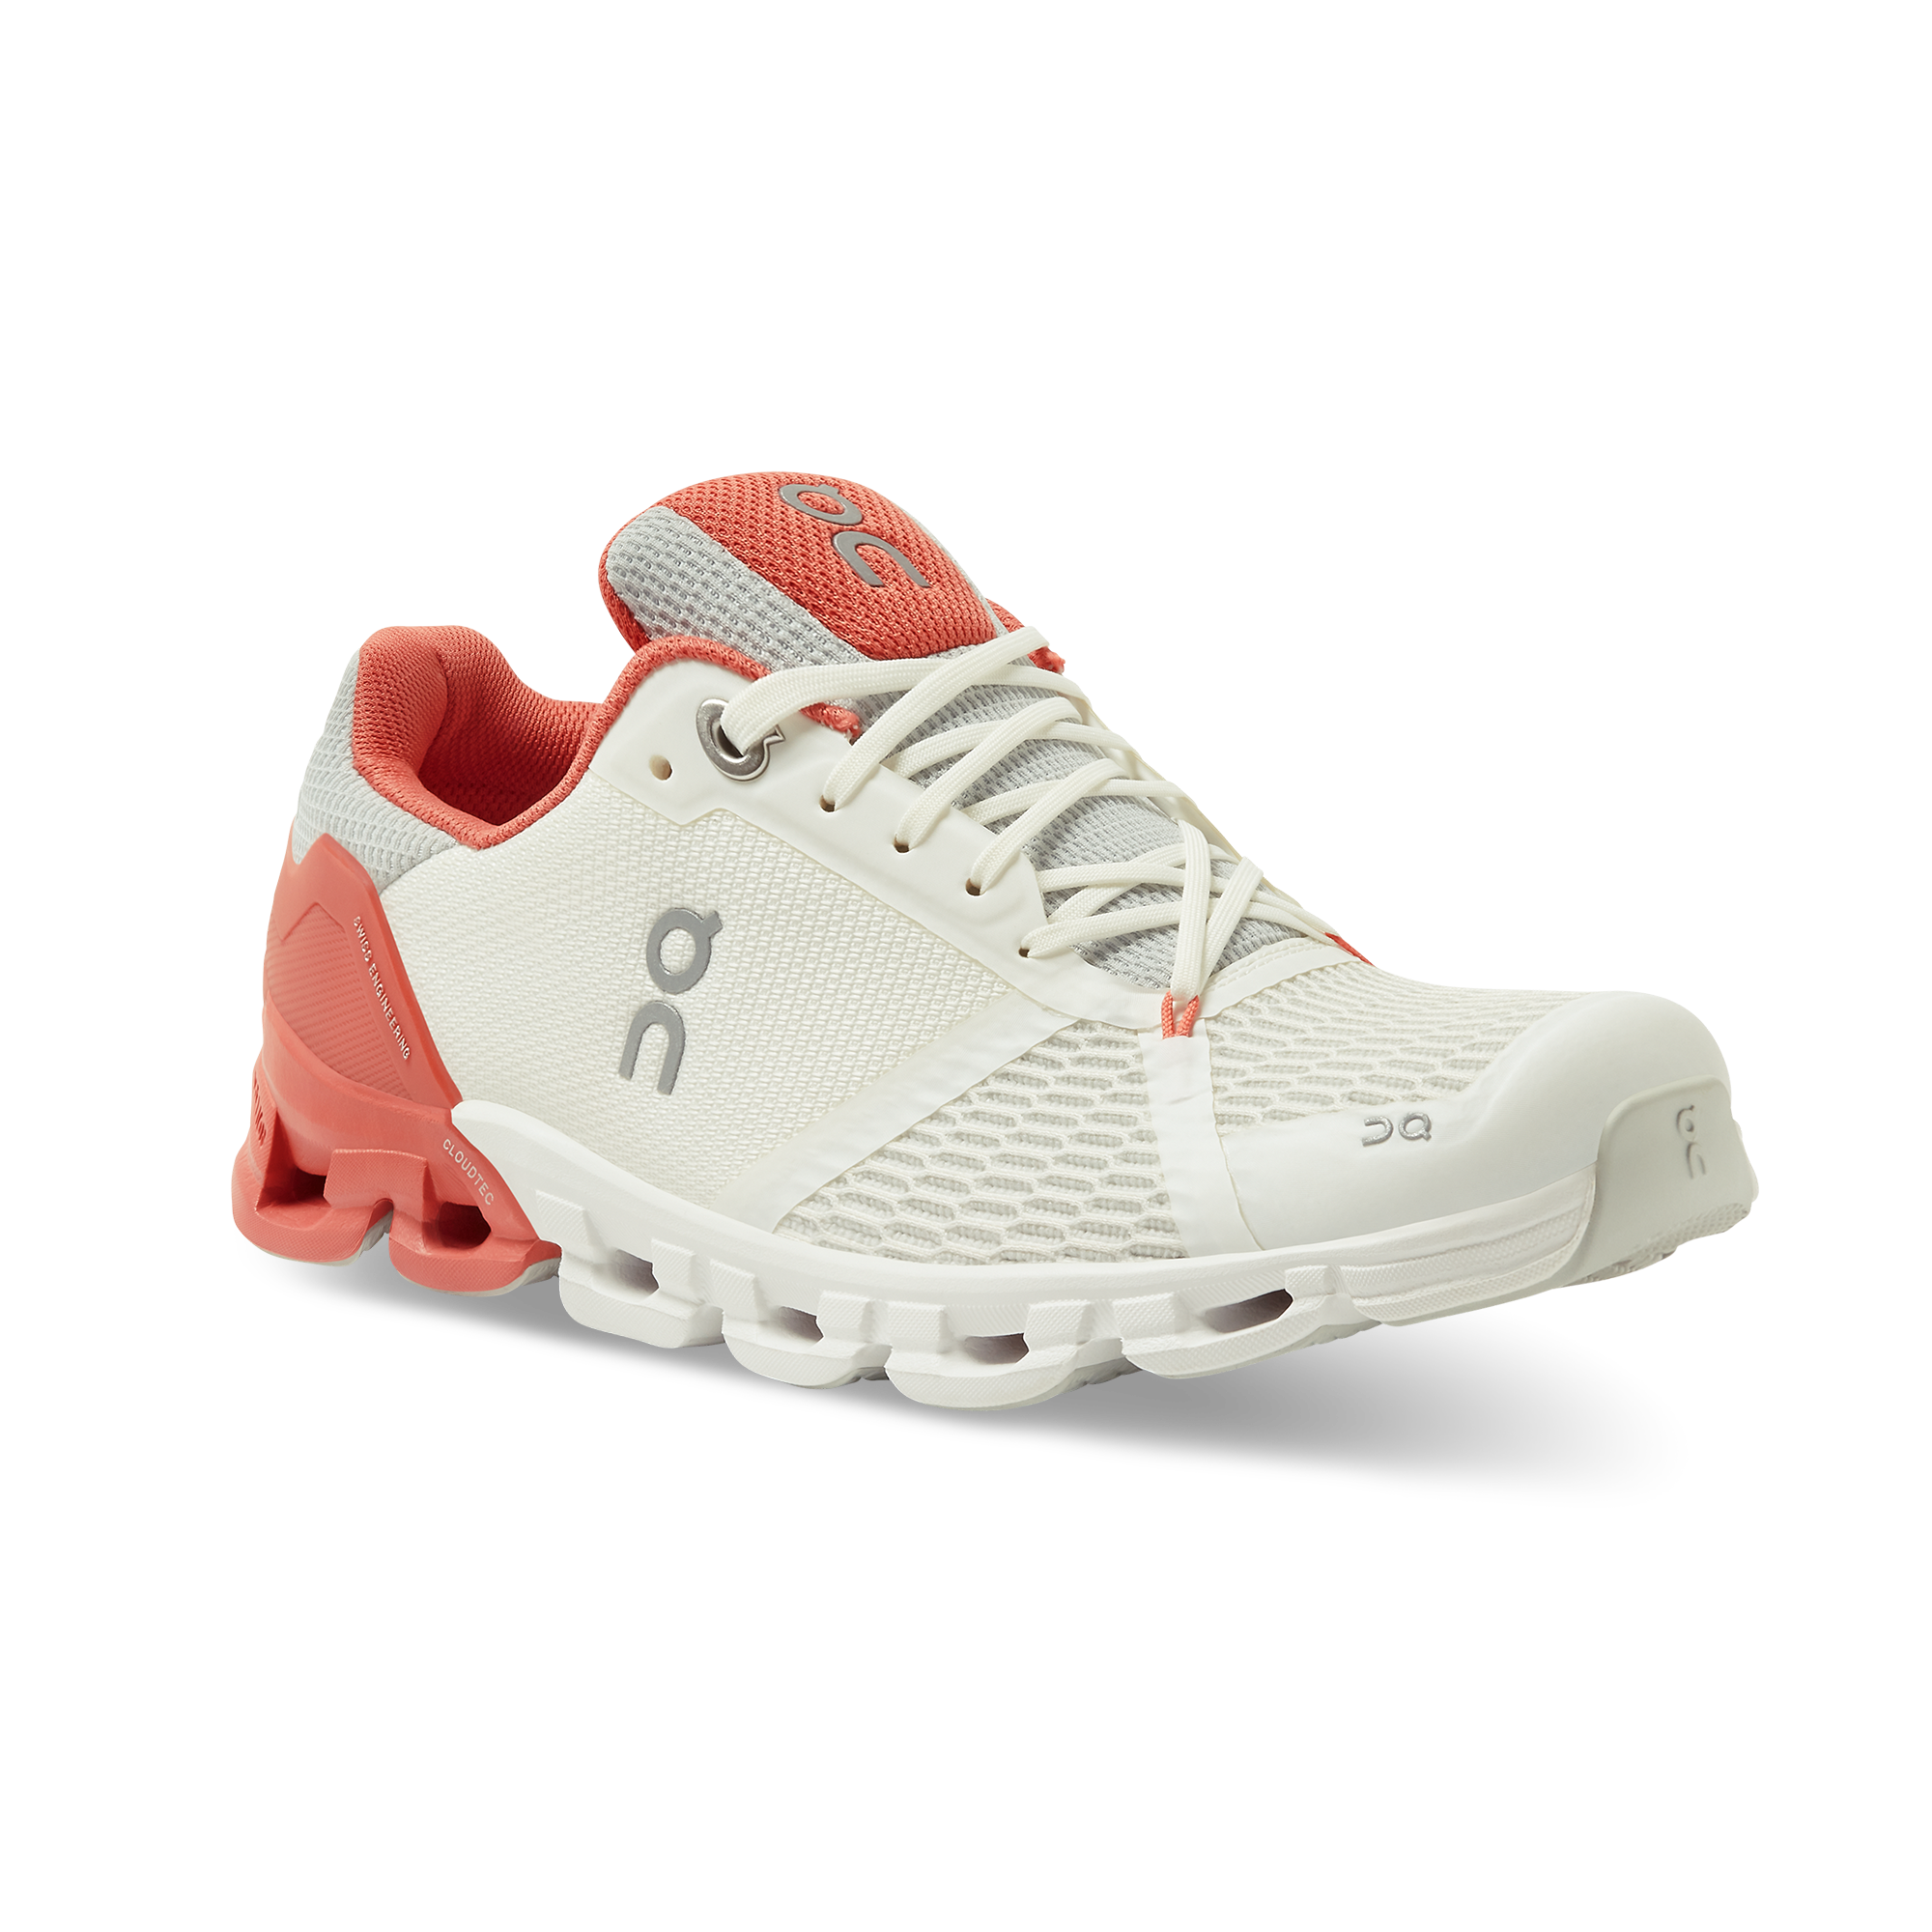 on trainers cloudflyer